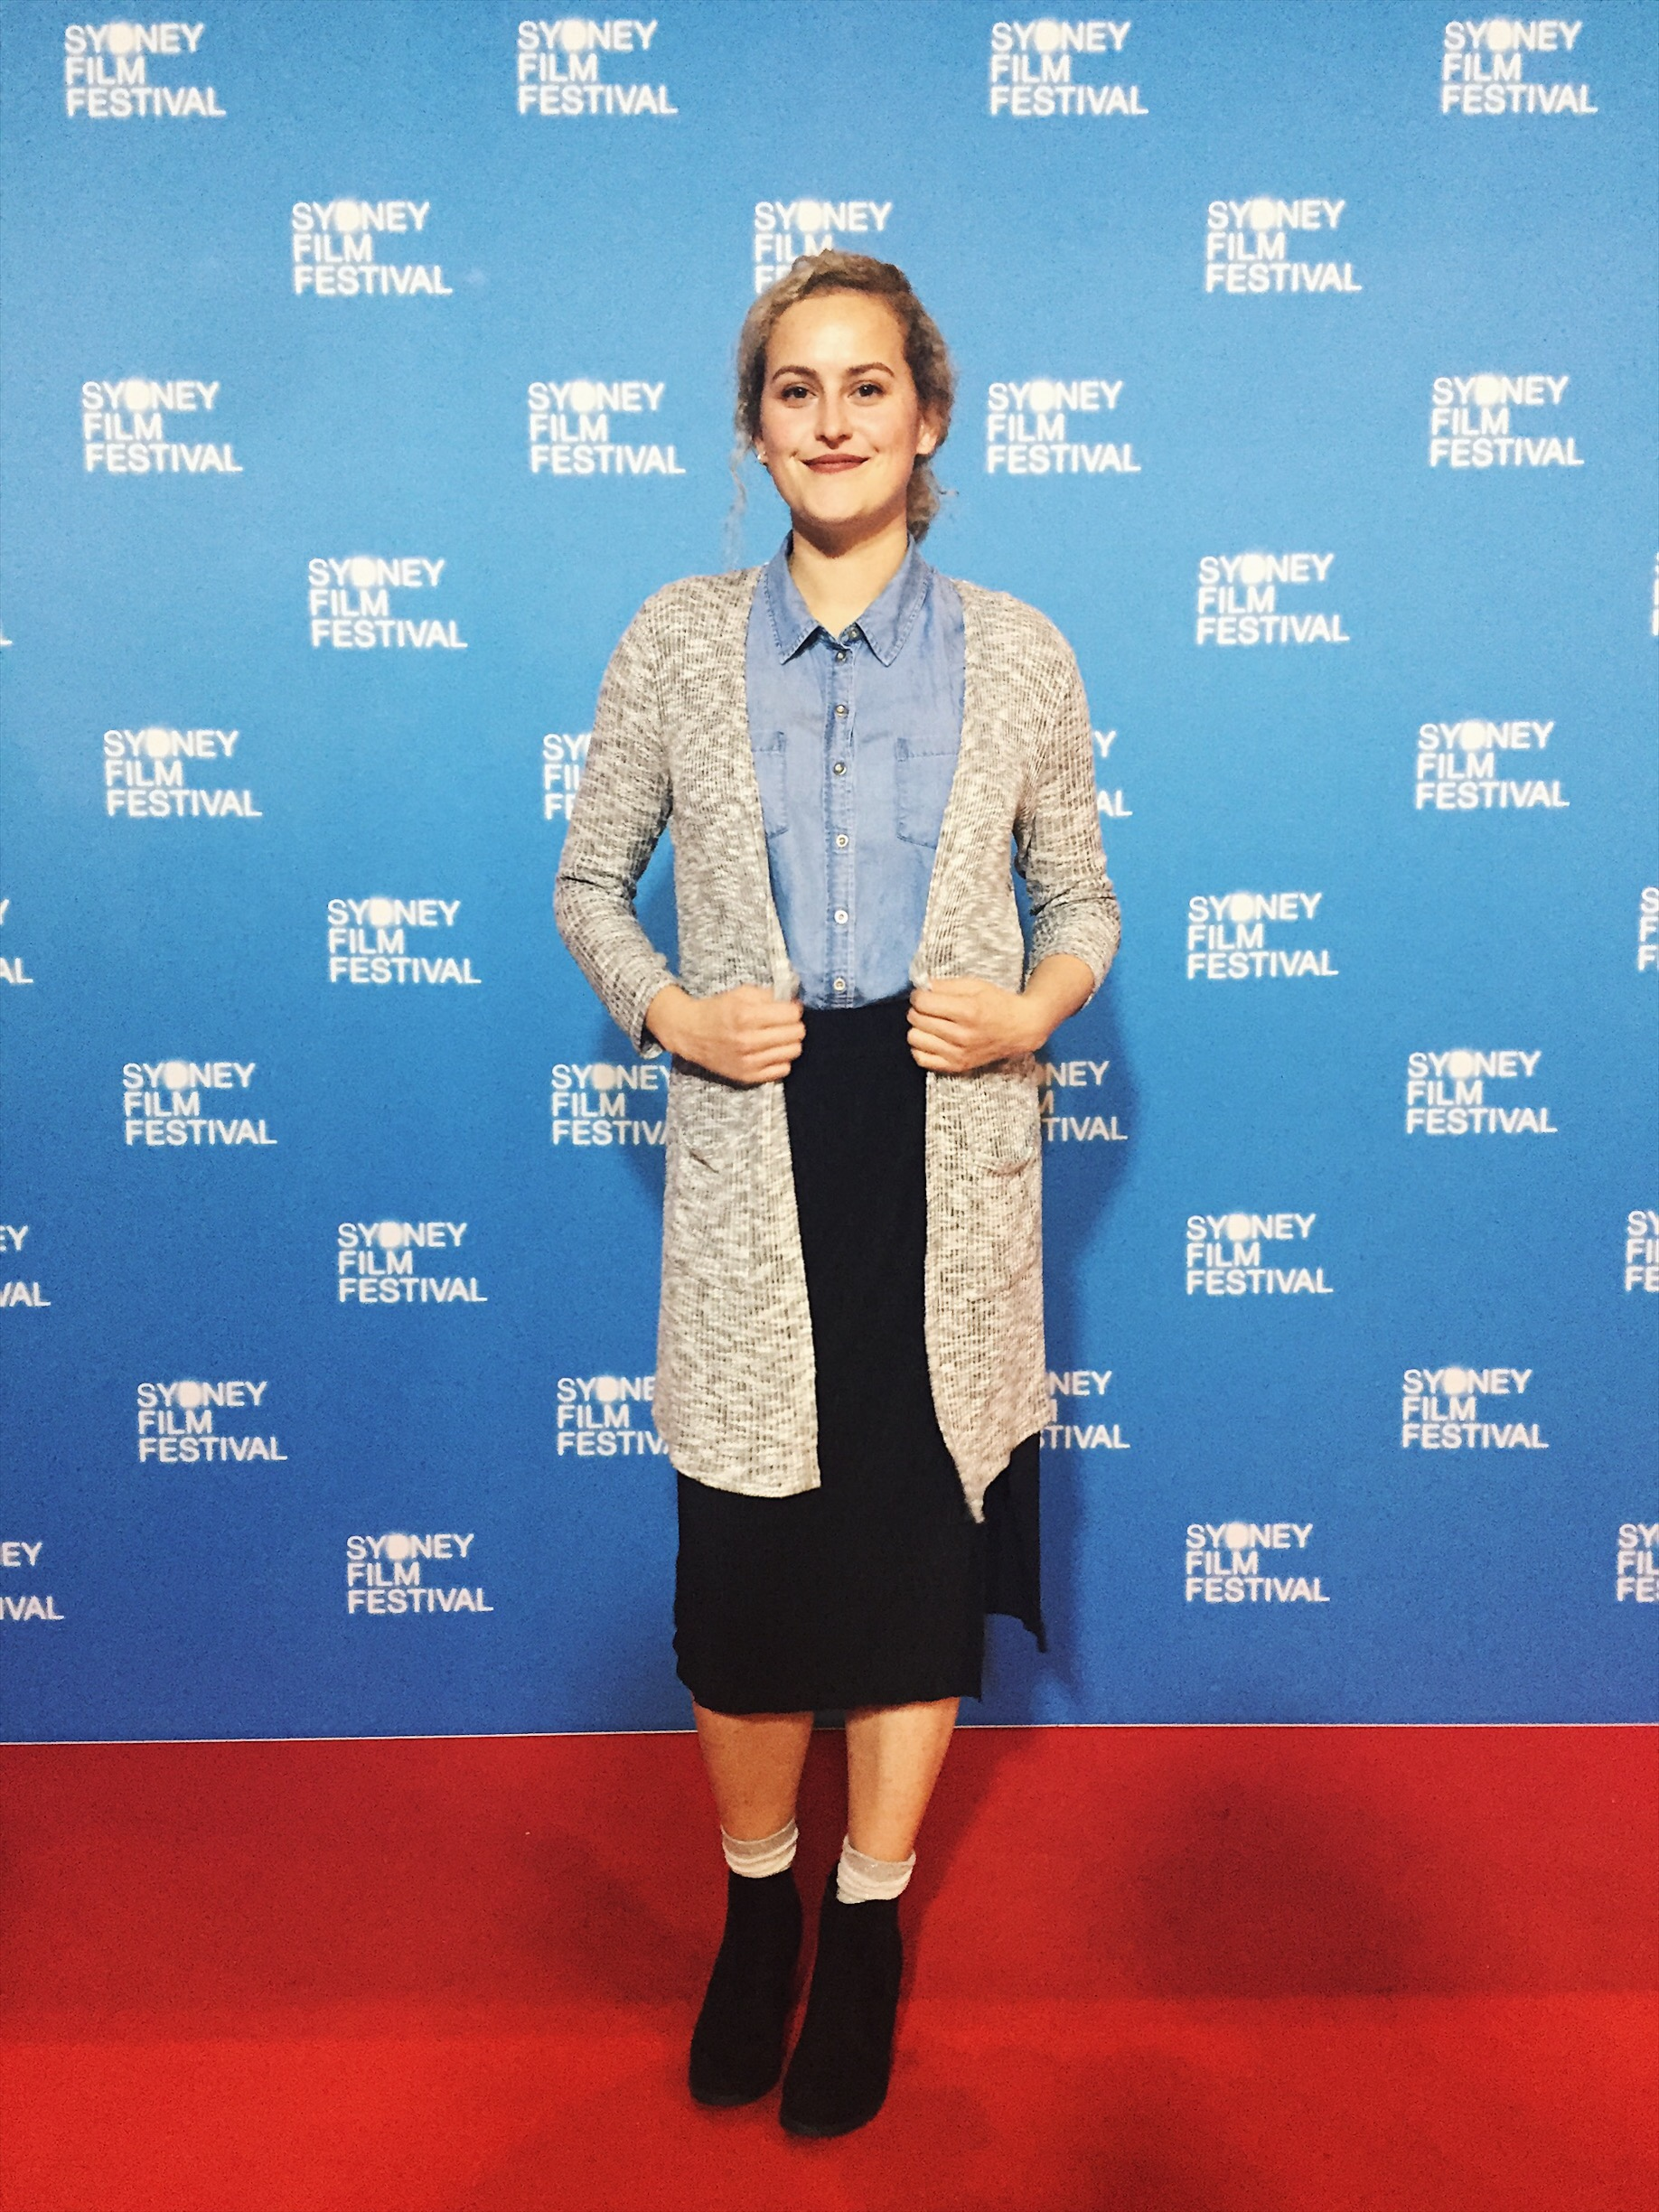 Adelle at Sydney Film Festival 2017